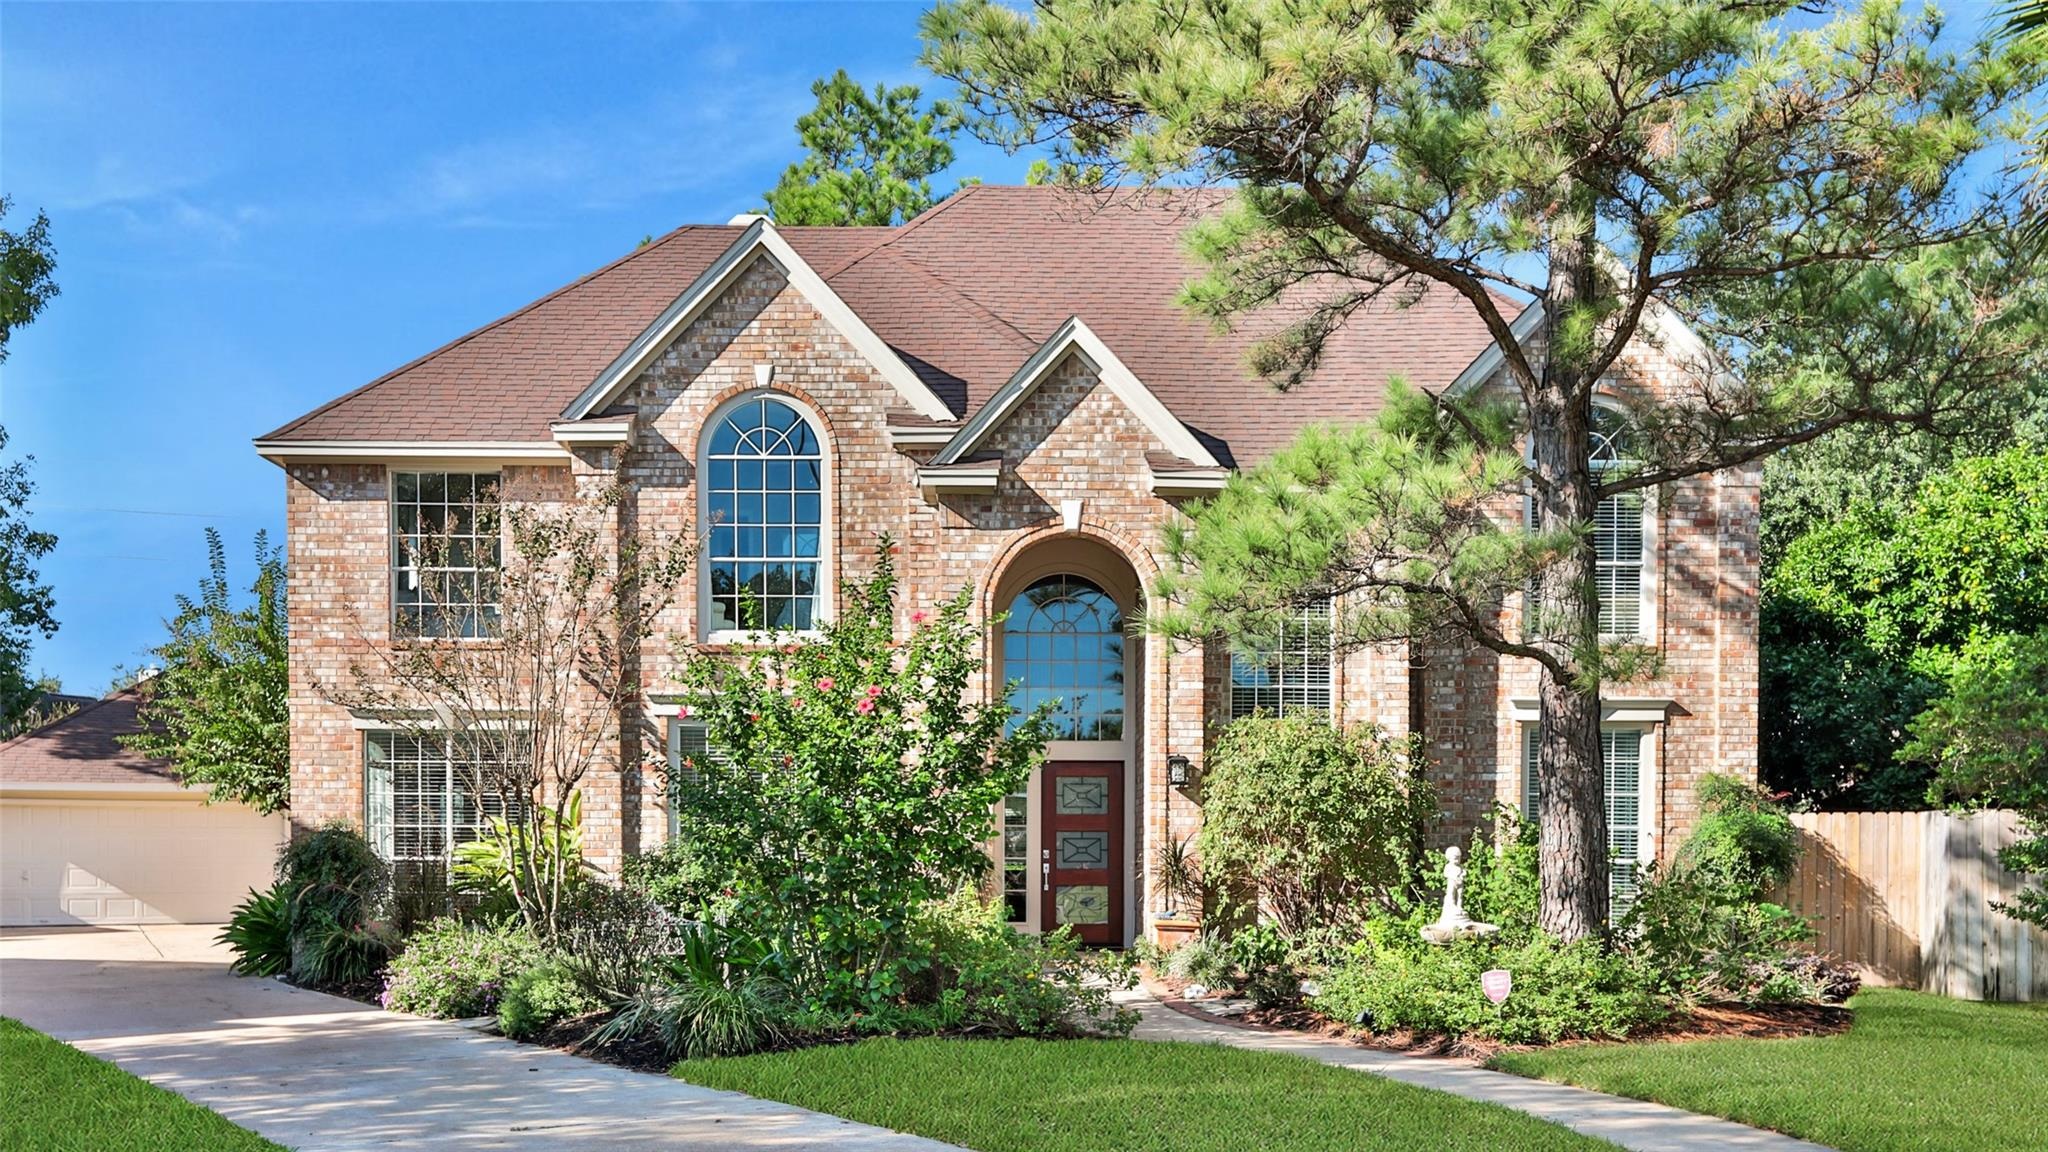 9531 Tarrant Court Property Photo - Houston, TX real estate listing